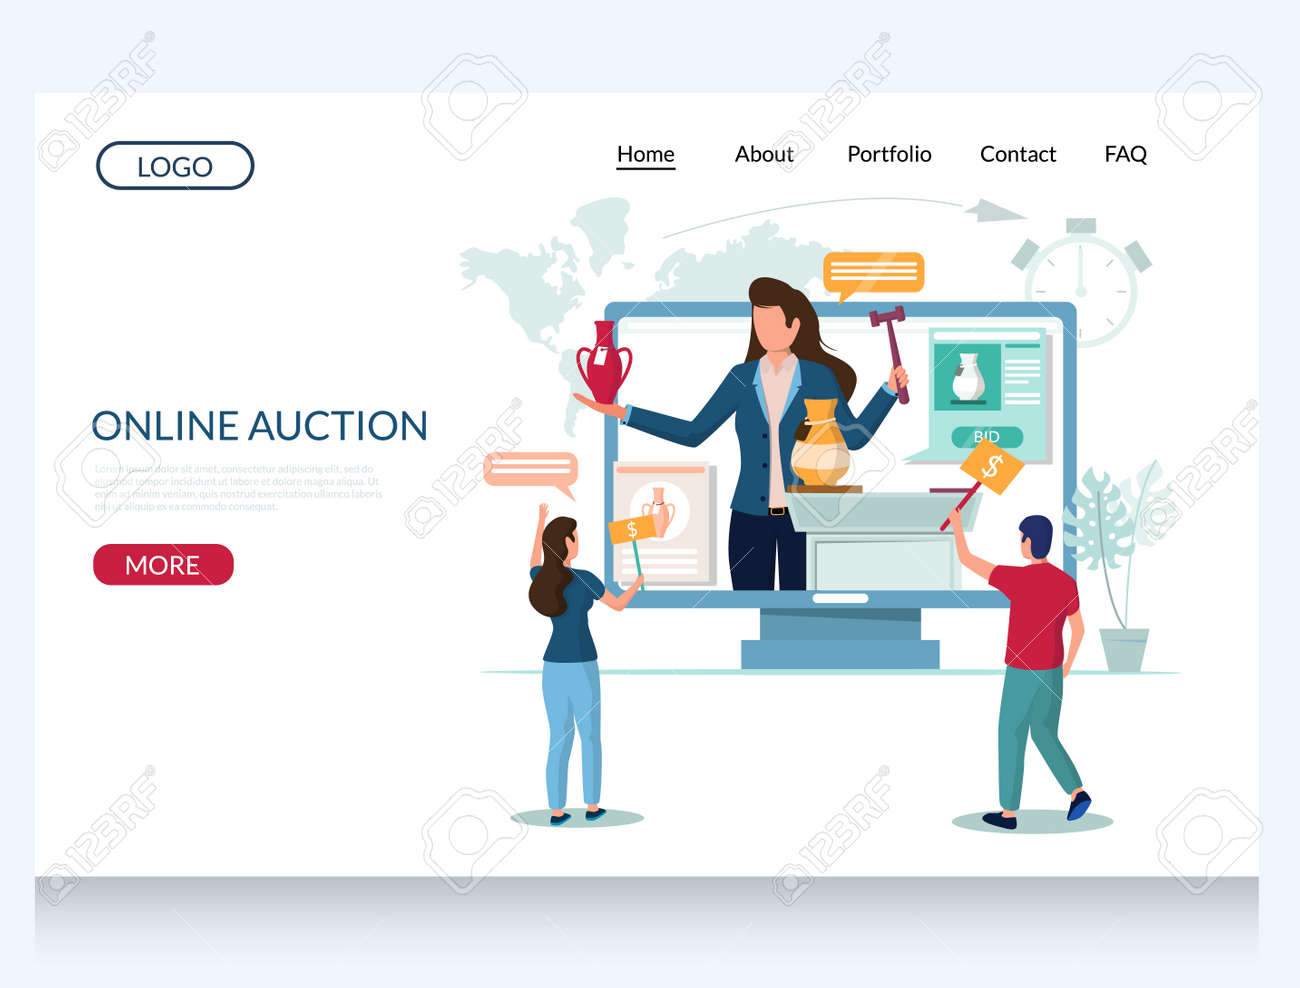 Online Auction Vector Website Template Web Page And Landing Royalty Free Cliparts Vectors And Stock Illustration Image 136037958